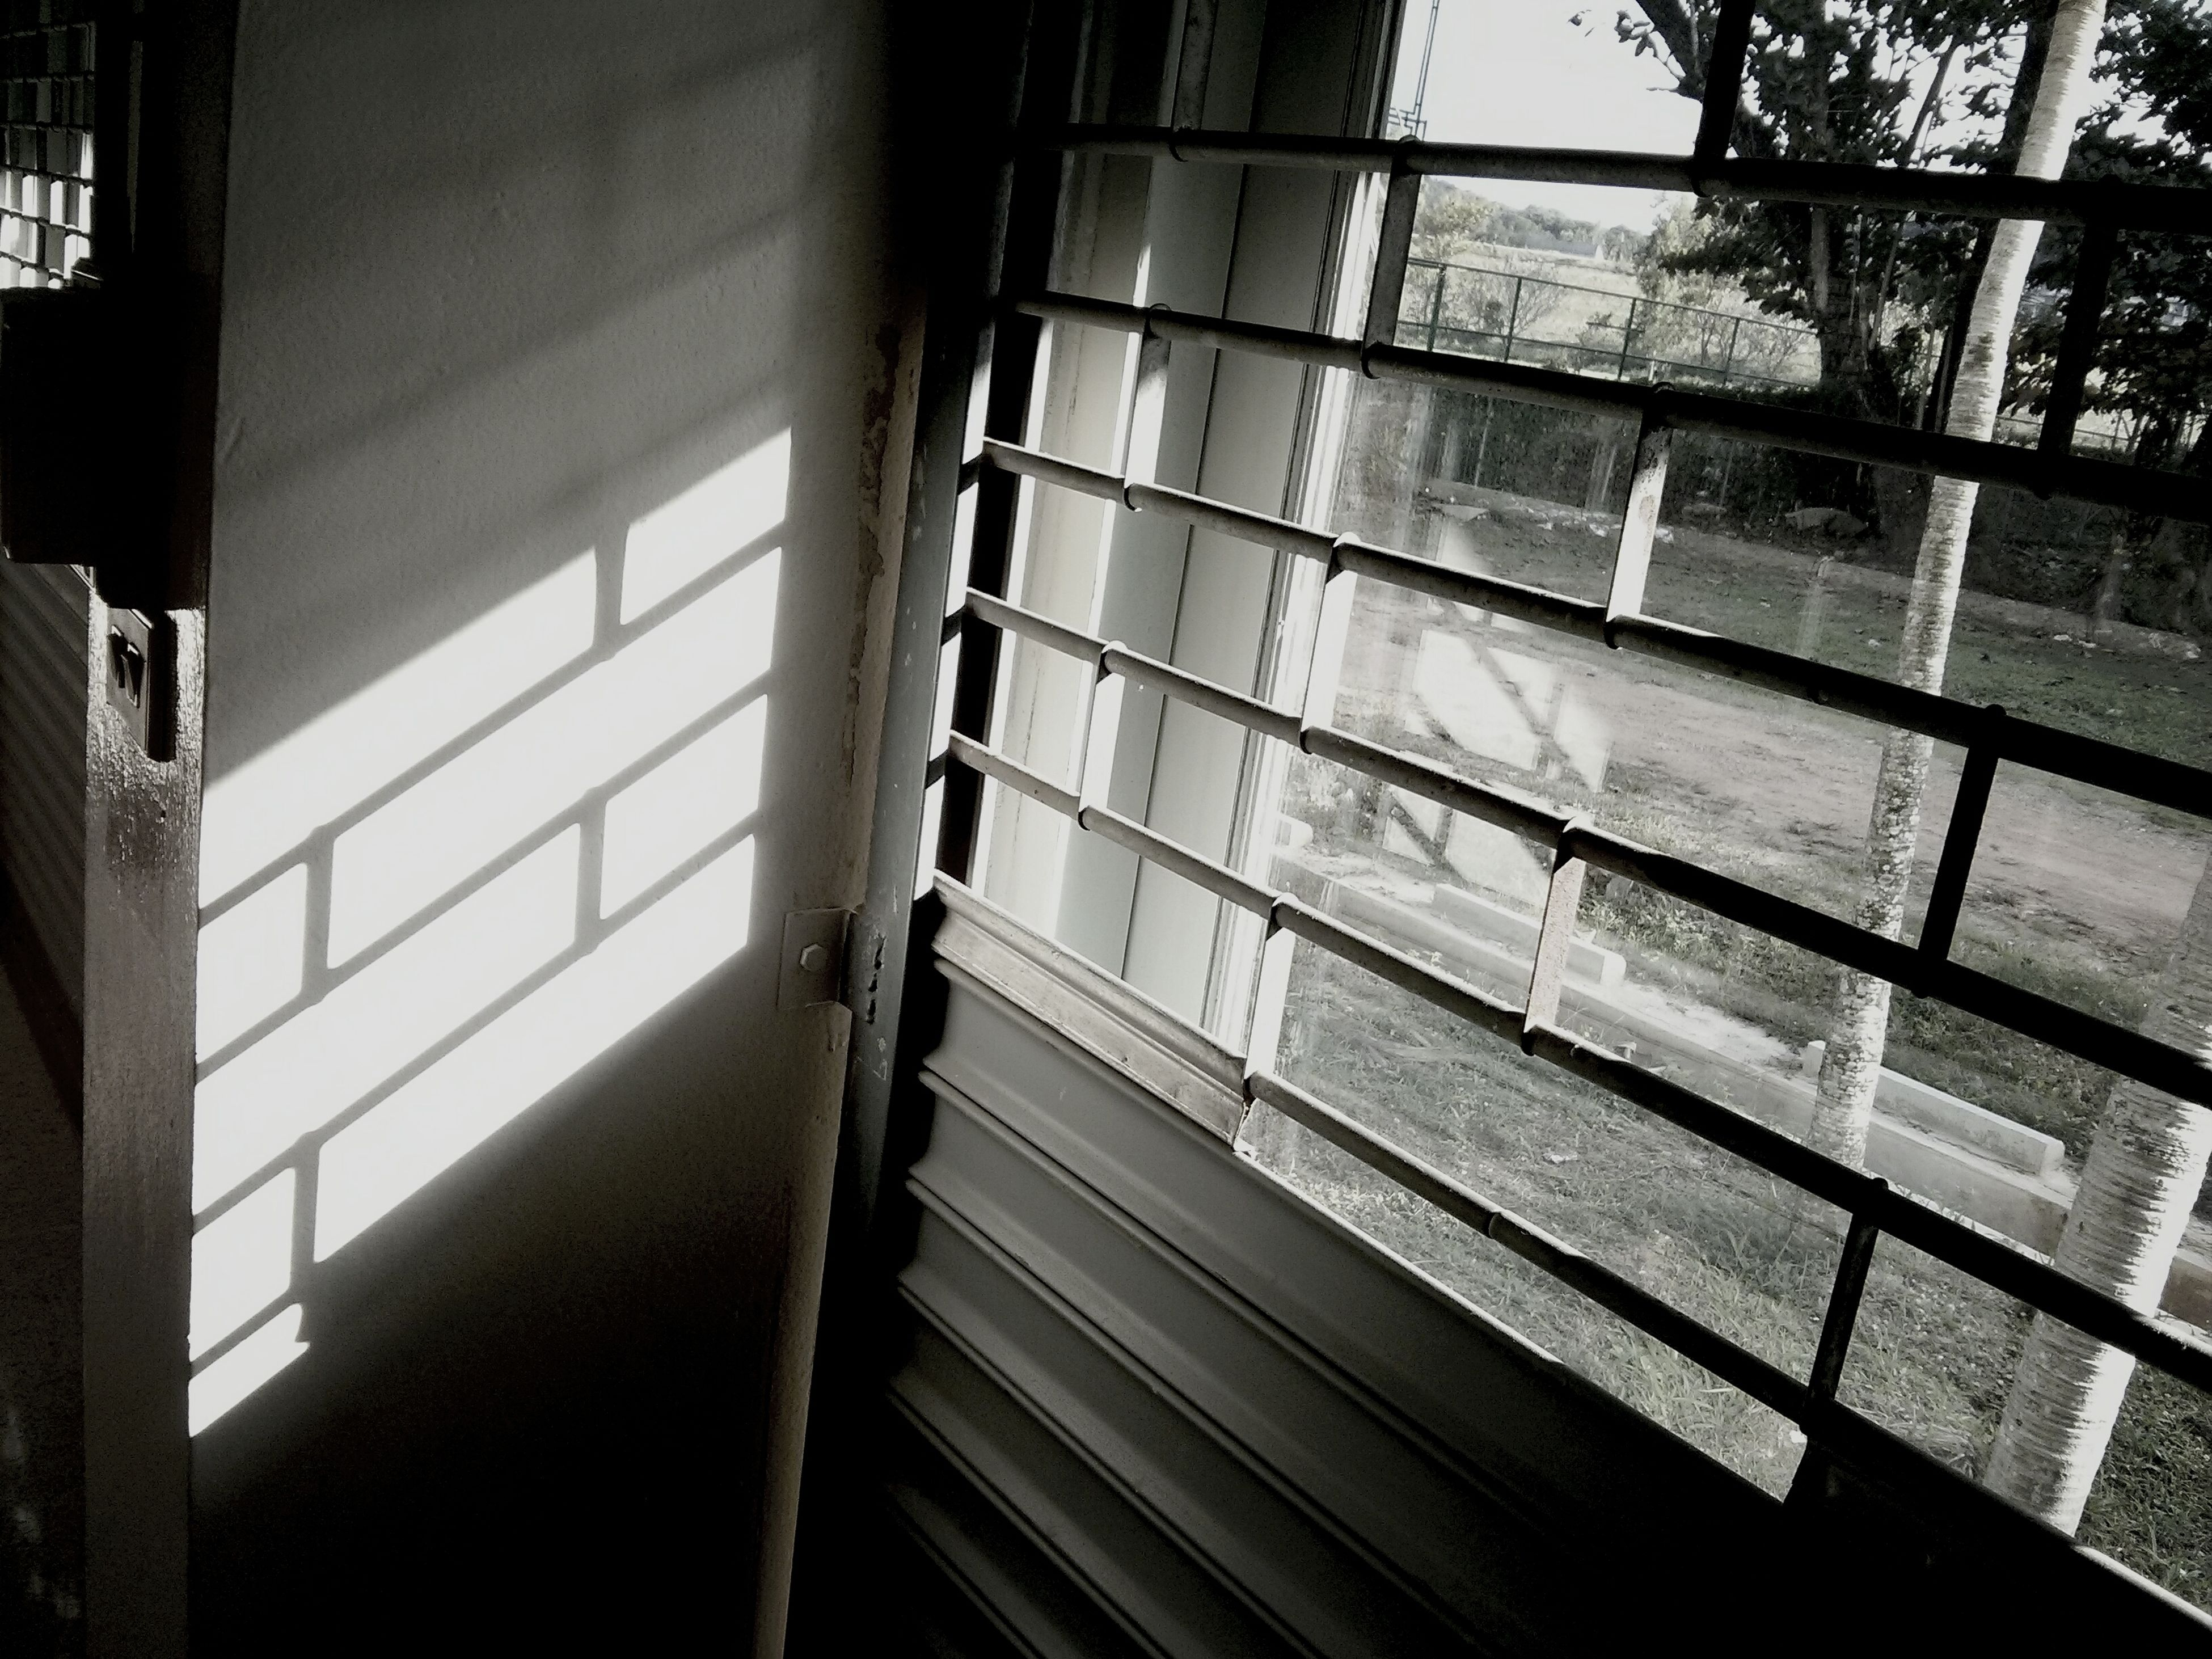 indoors, window, architecture, built structure, glass - material, railing, transparent, metal, building, steps, day, reflection, staircase, building exterior, empty, sunlight, no people, absence, ceiling, interior